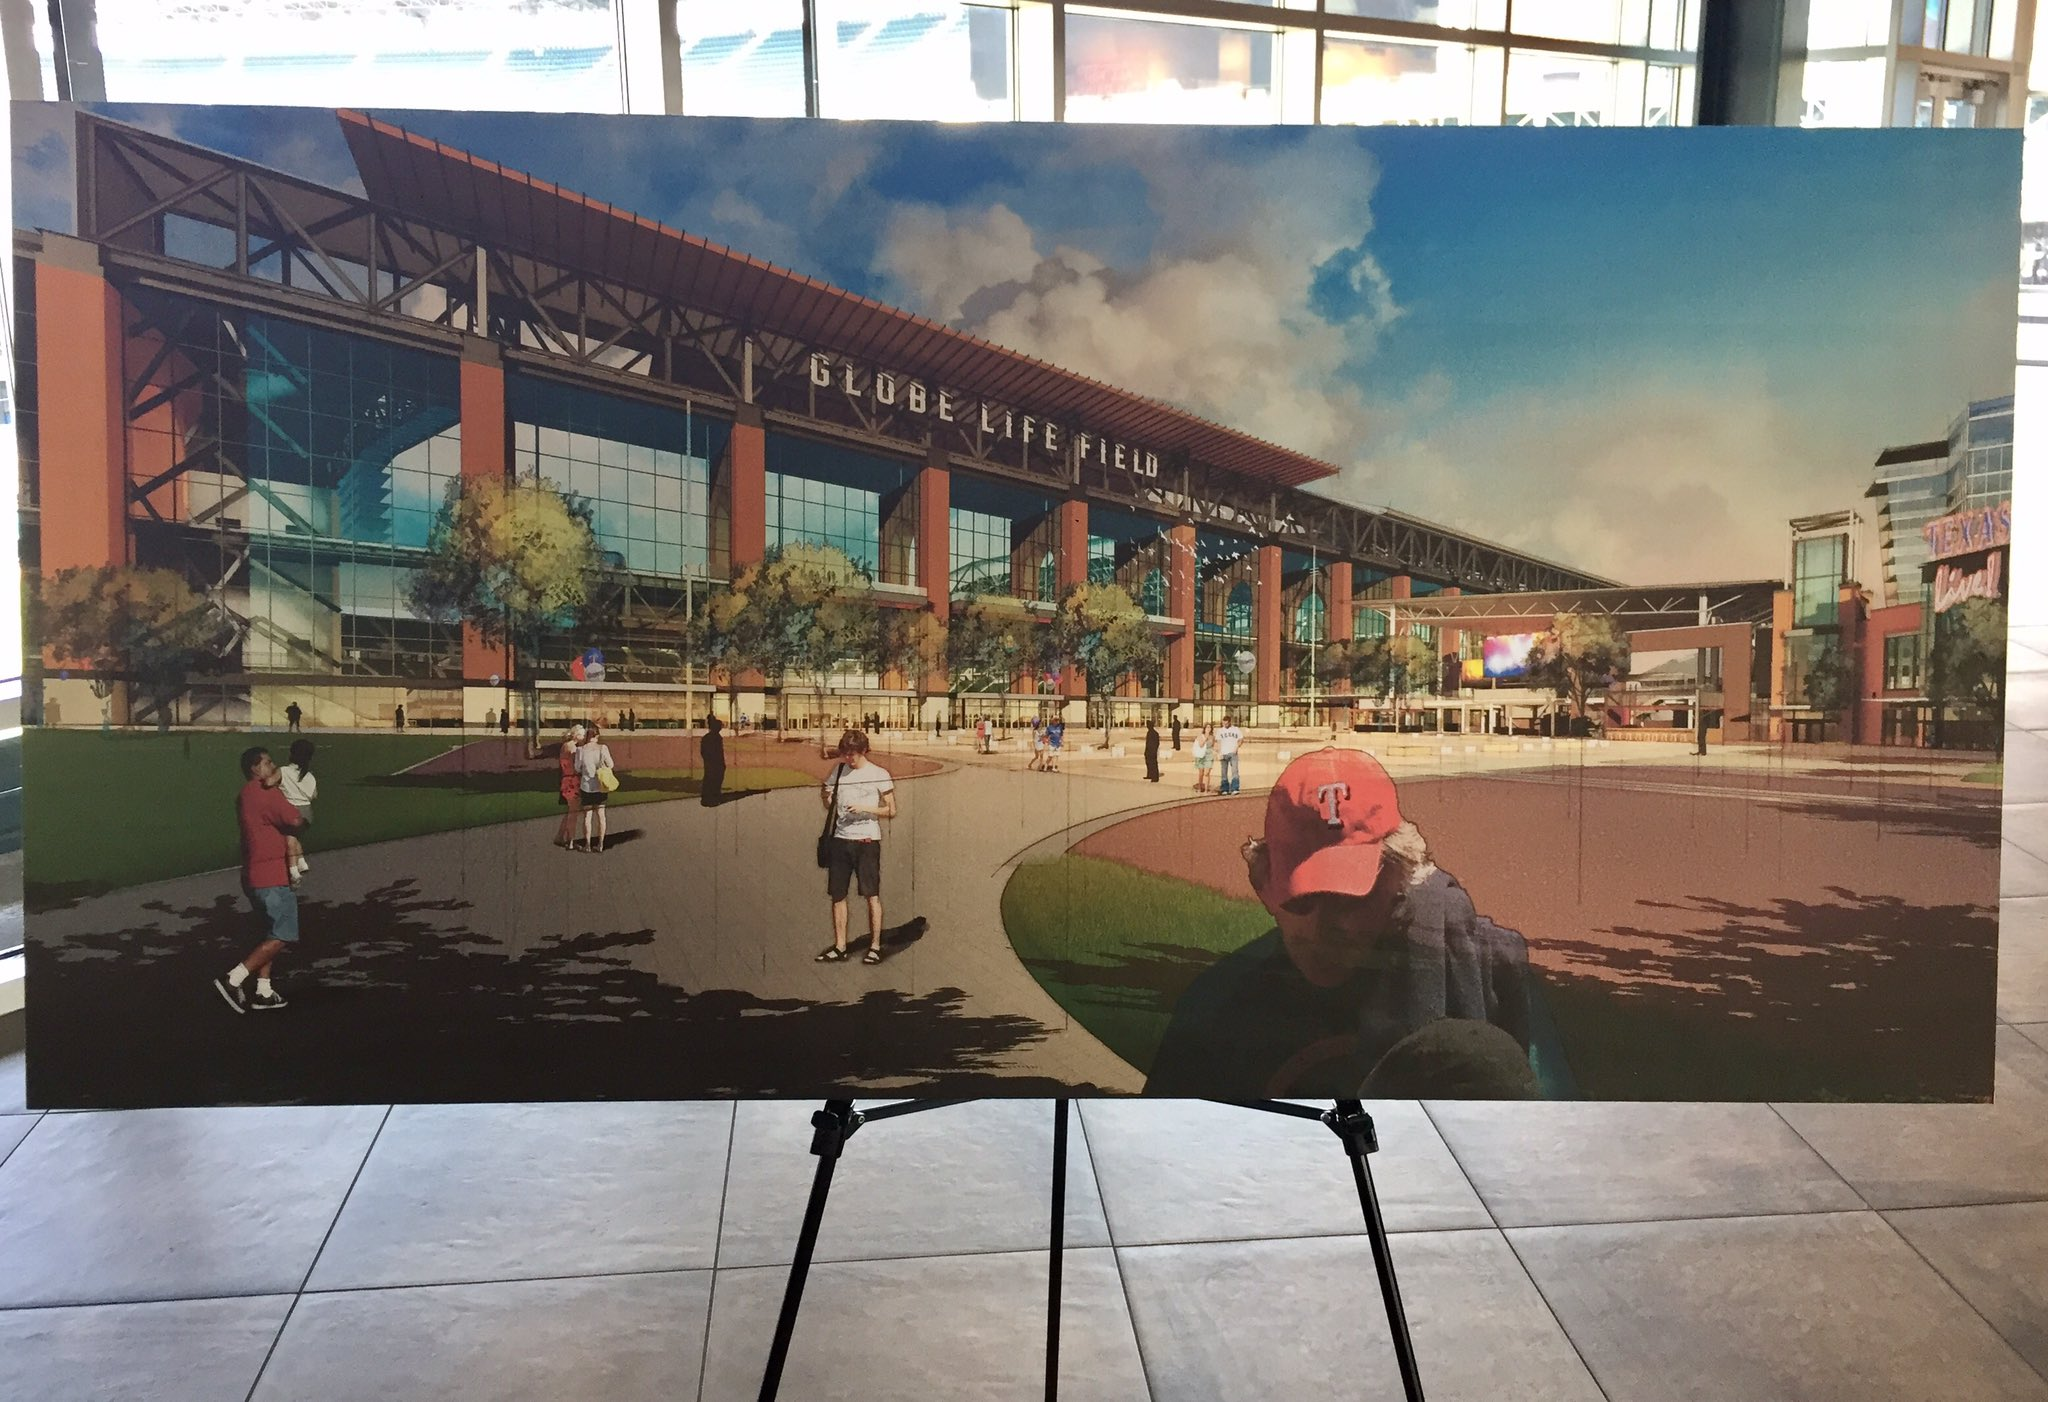 New renderings of the future Globe Life Field for the Texas Rangers in Arlington set to open 2020. https://t.co/wUVezBtS9v